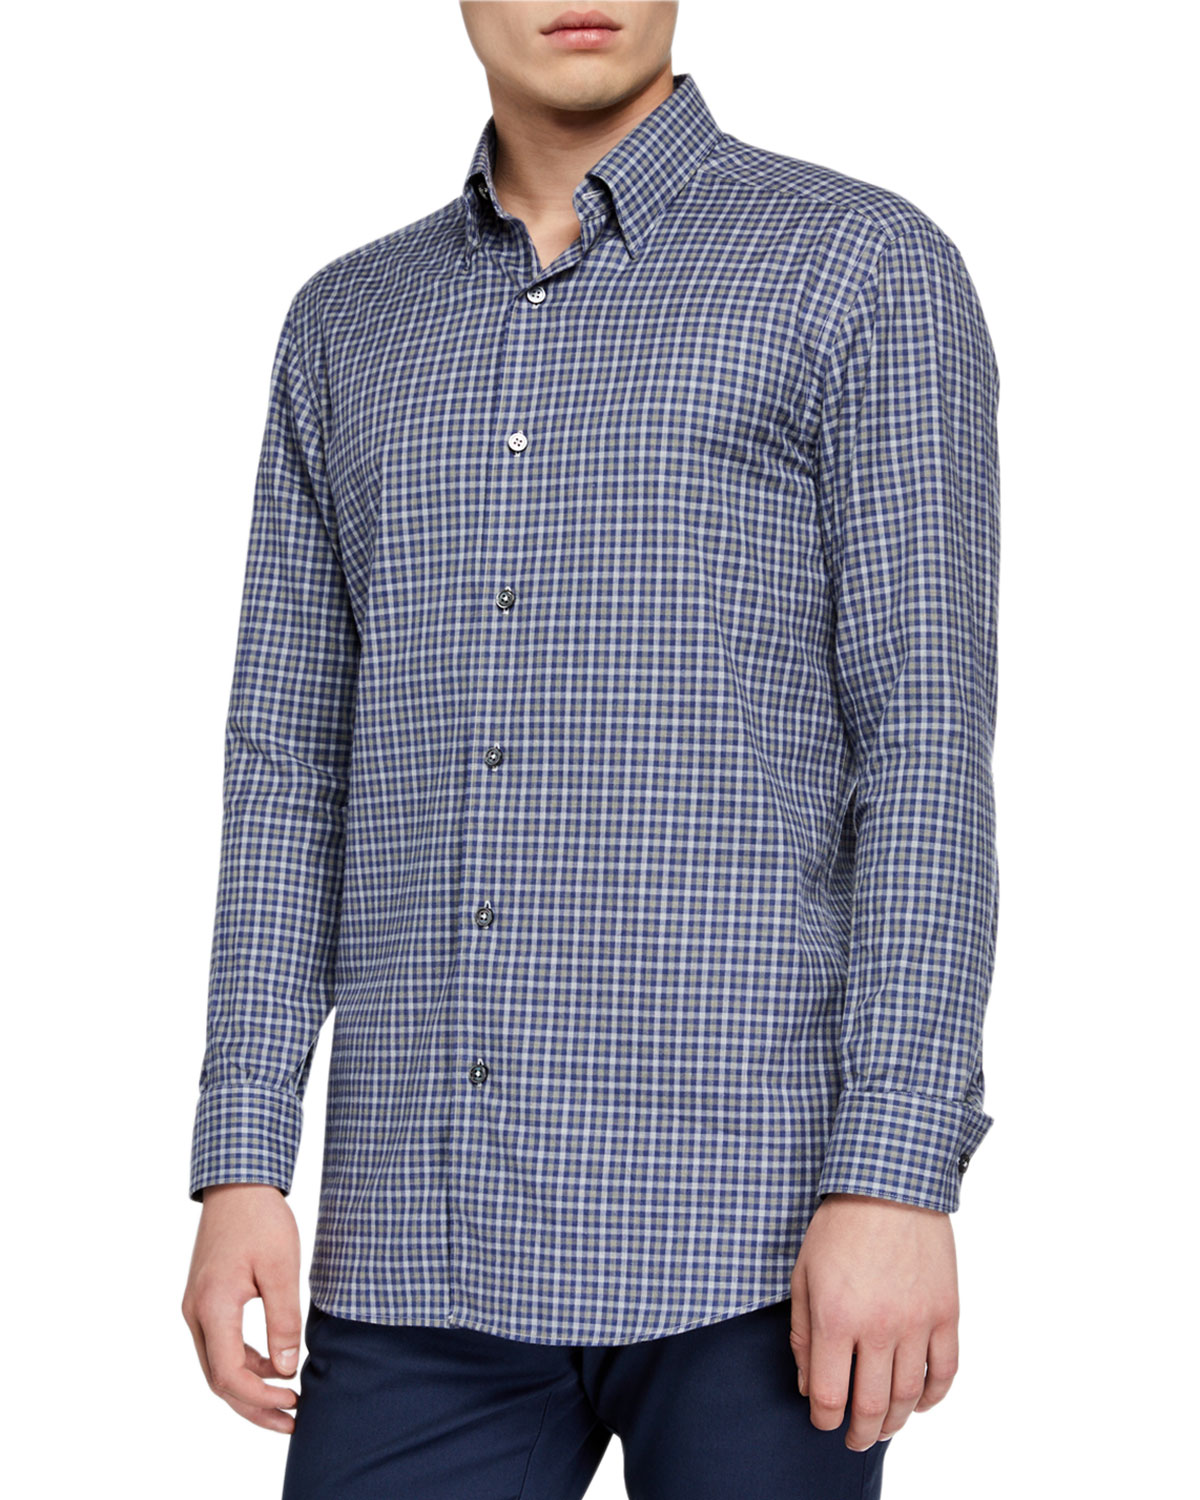 Ermenegildo Zegna T-shirts MEN'S SMALL CHECK SPORT SHIRT